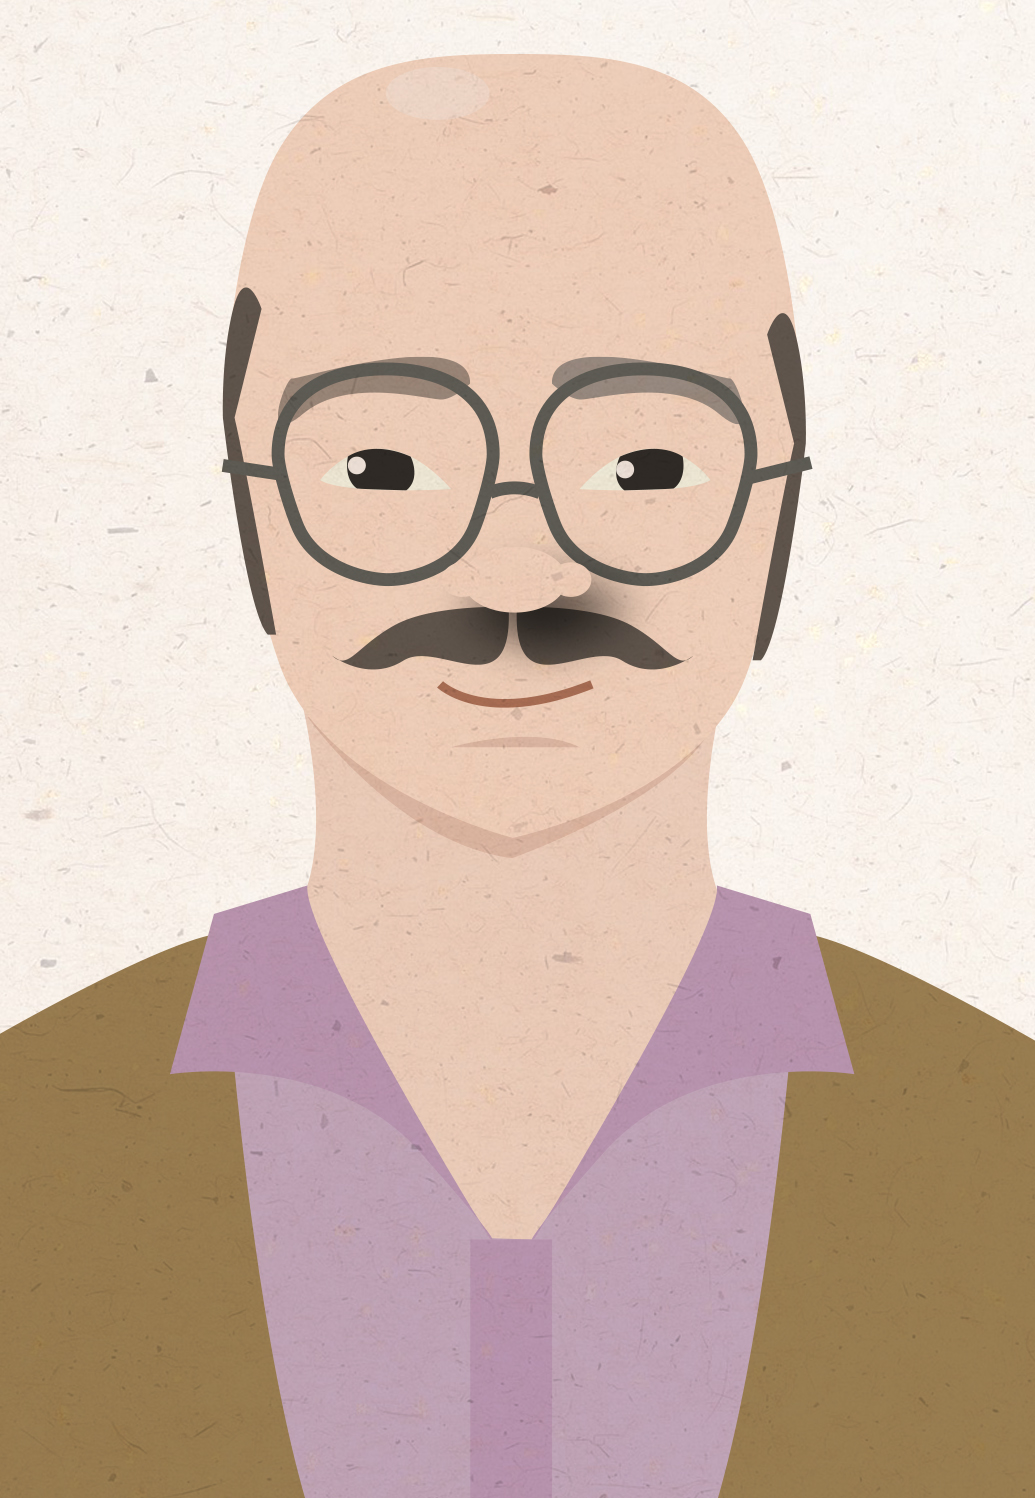 carolined: A quick Tobias Funke illustration I did.